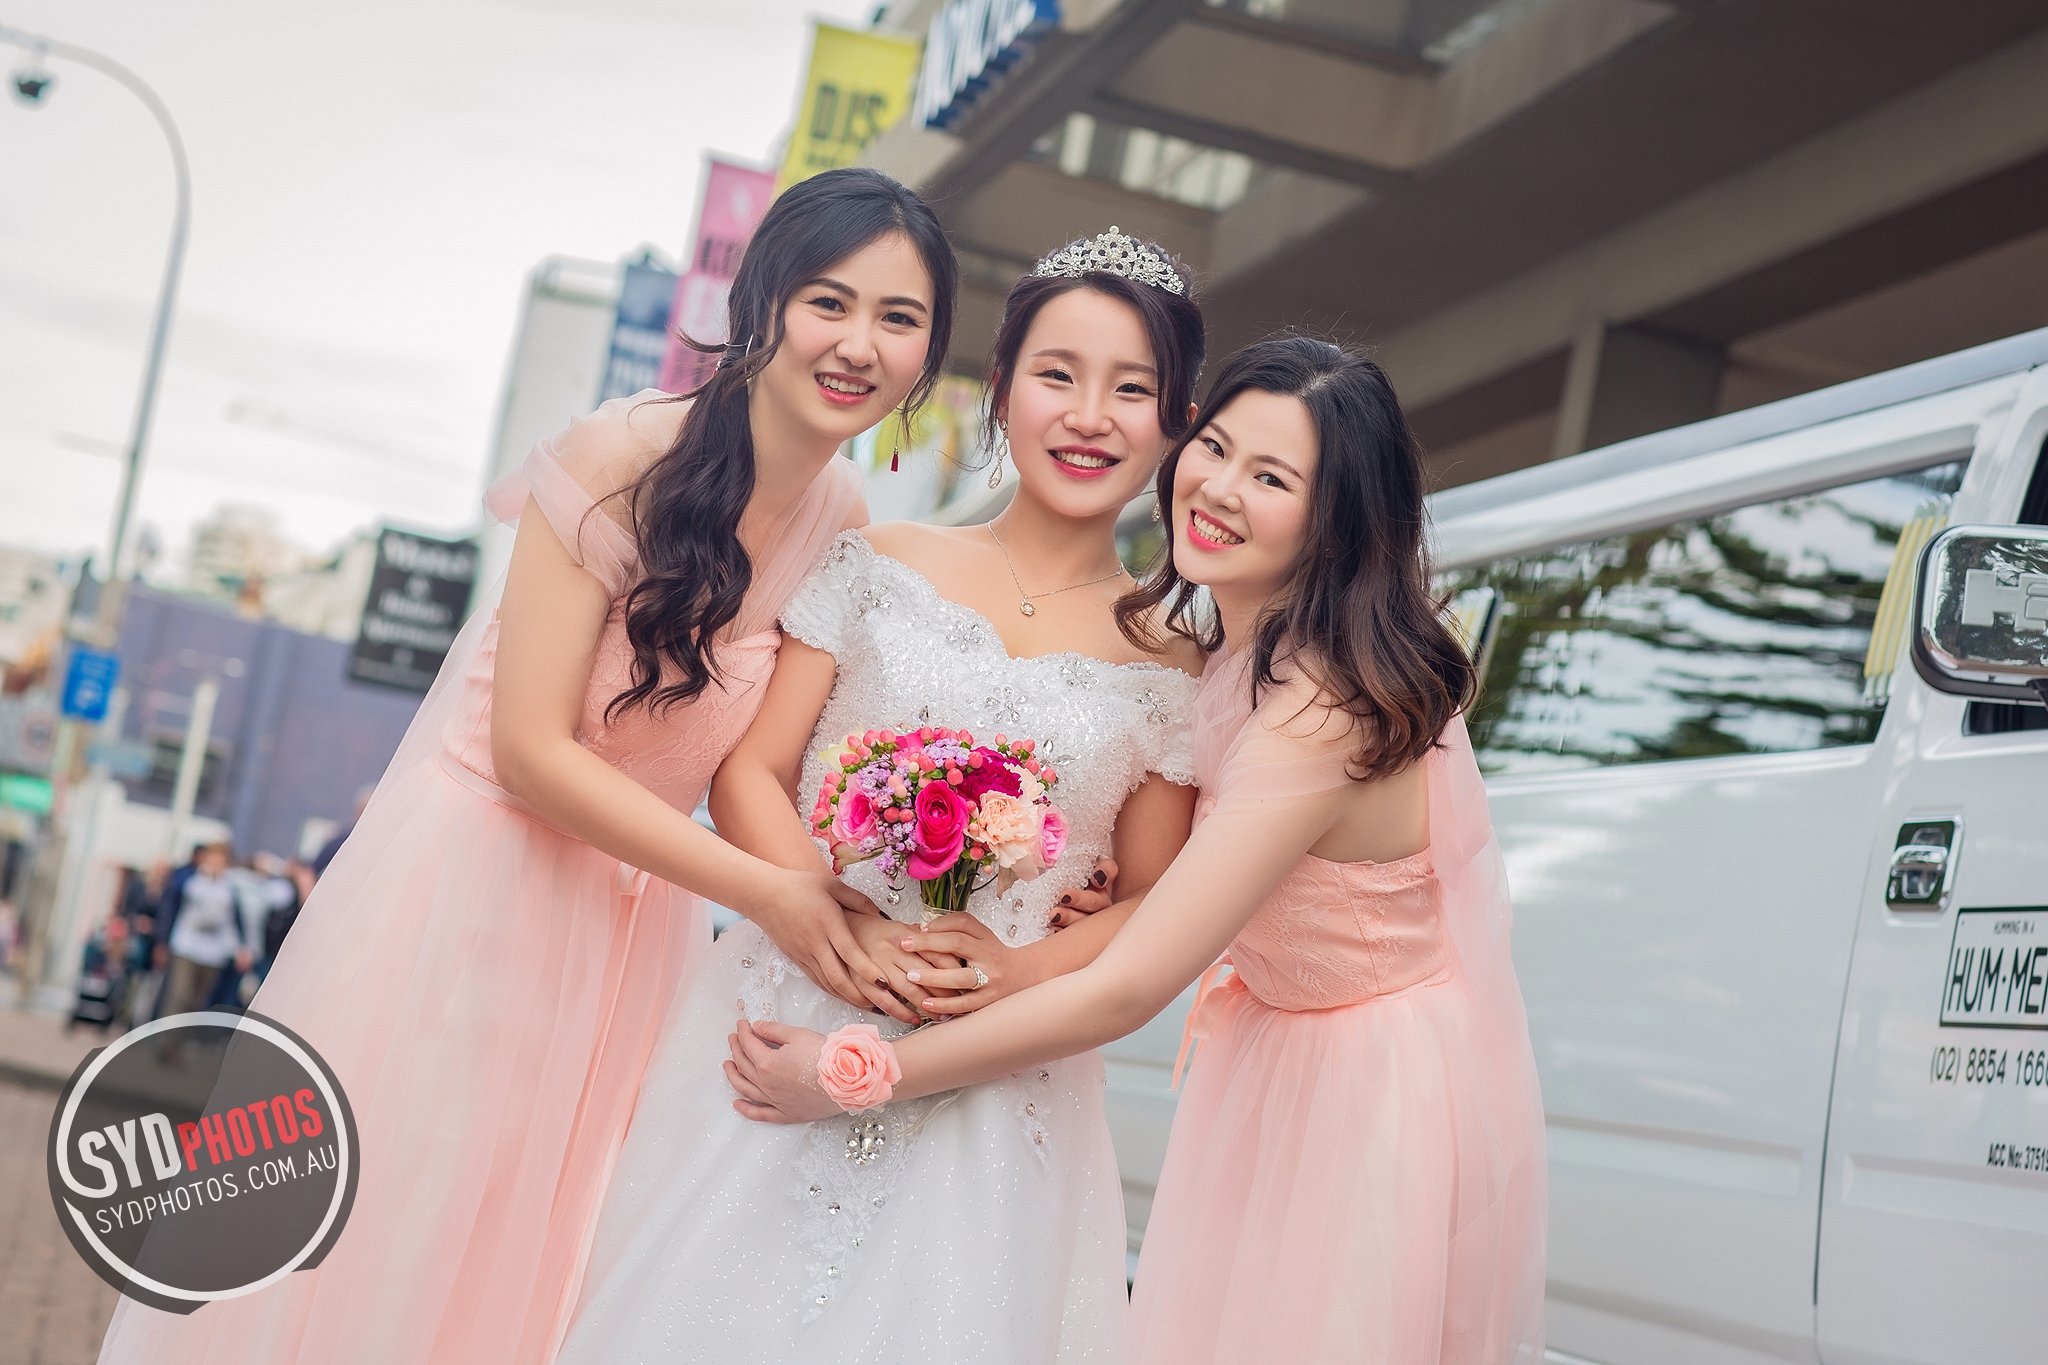 ID-100239-20180901-Ling-jpg (194).jpg, By Photographer Sydphotos.wedding, Created on 23 Jan 2019, SYDPHOTOS Photography all rights reserved.